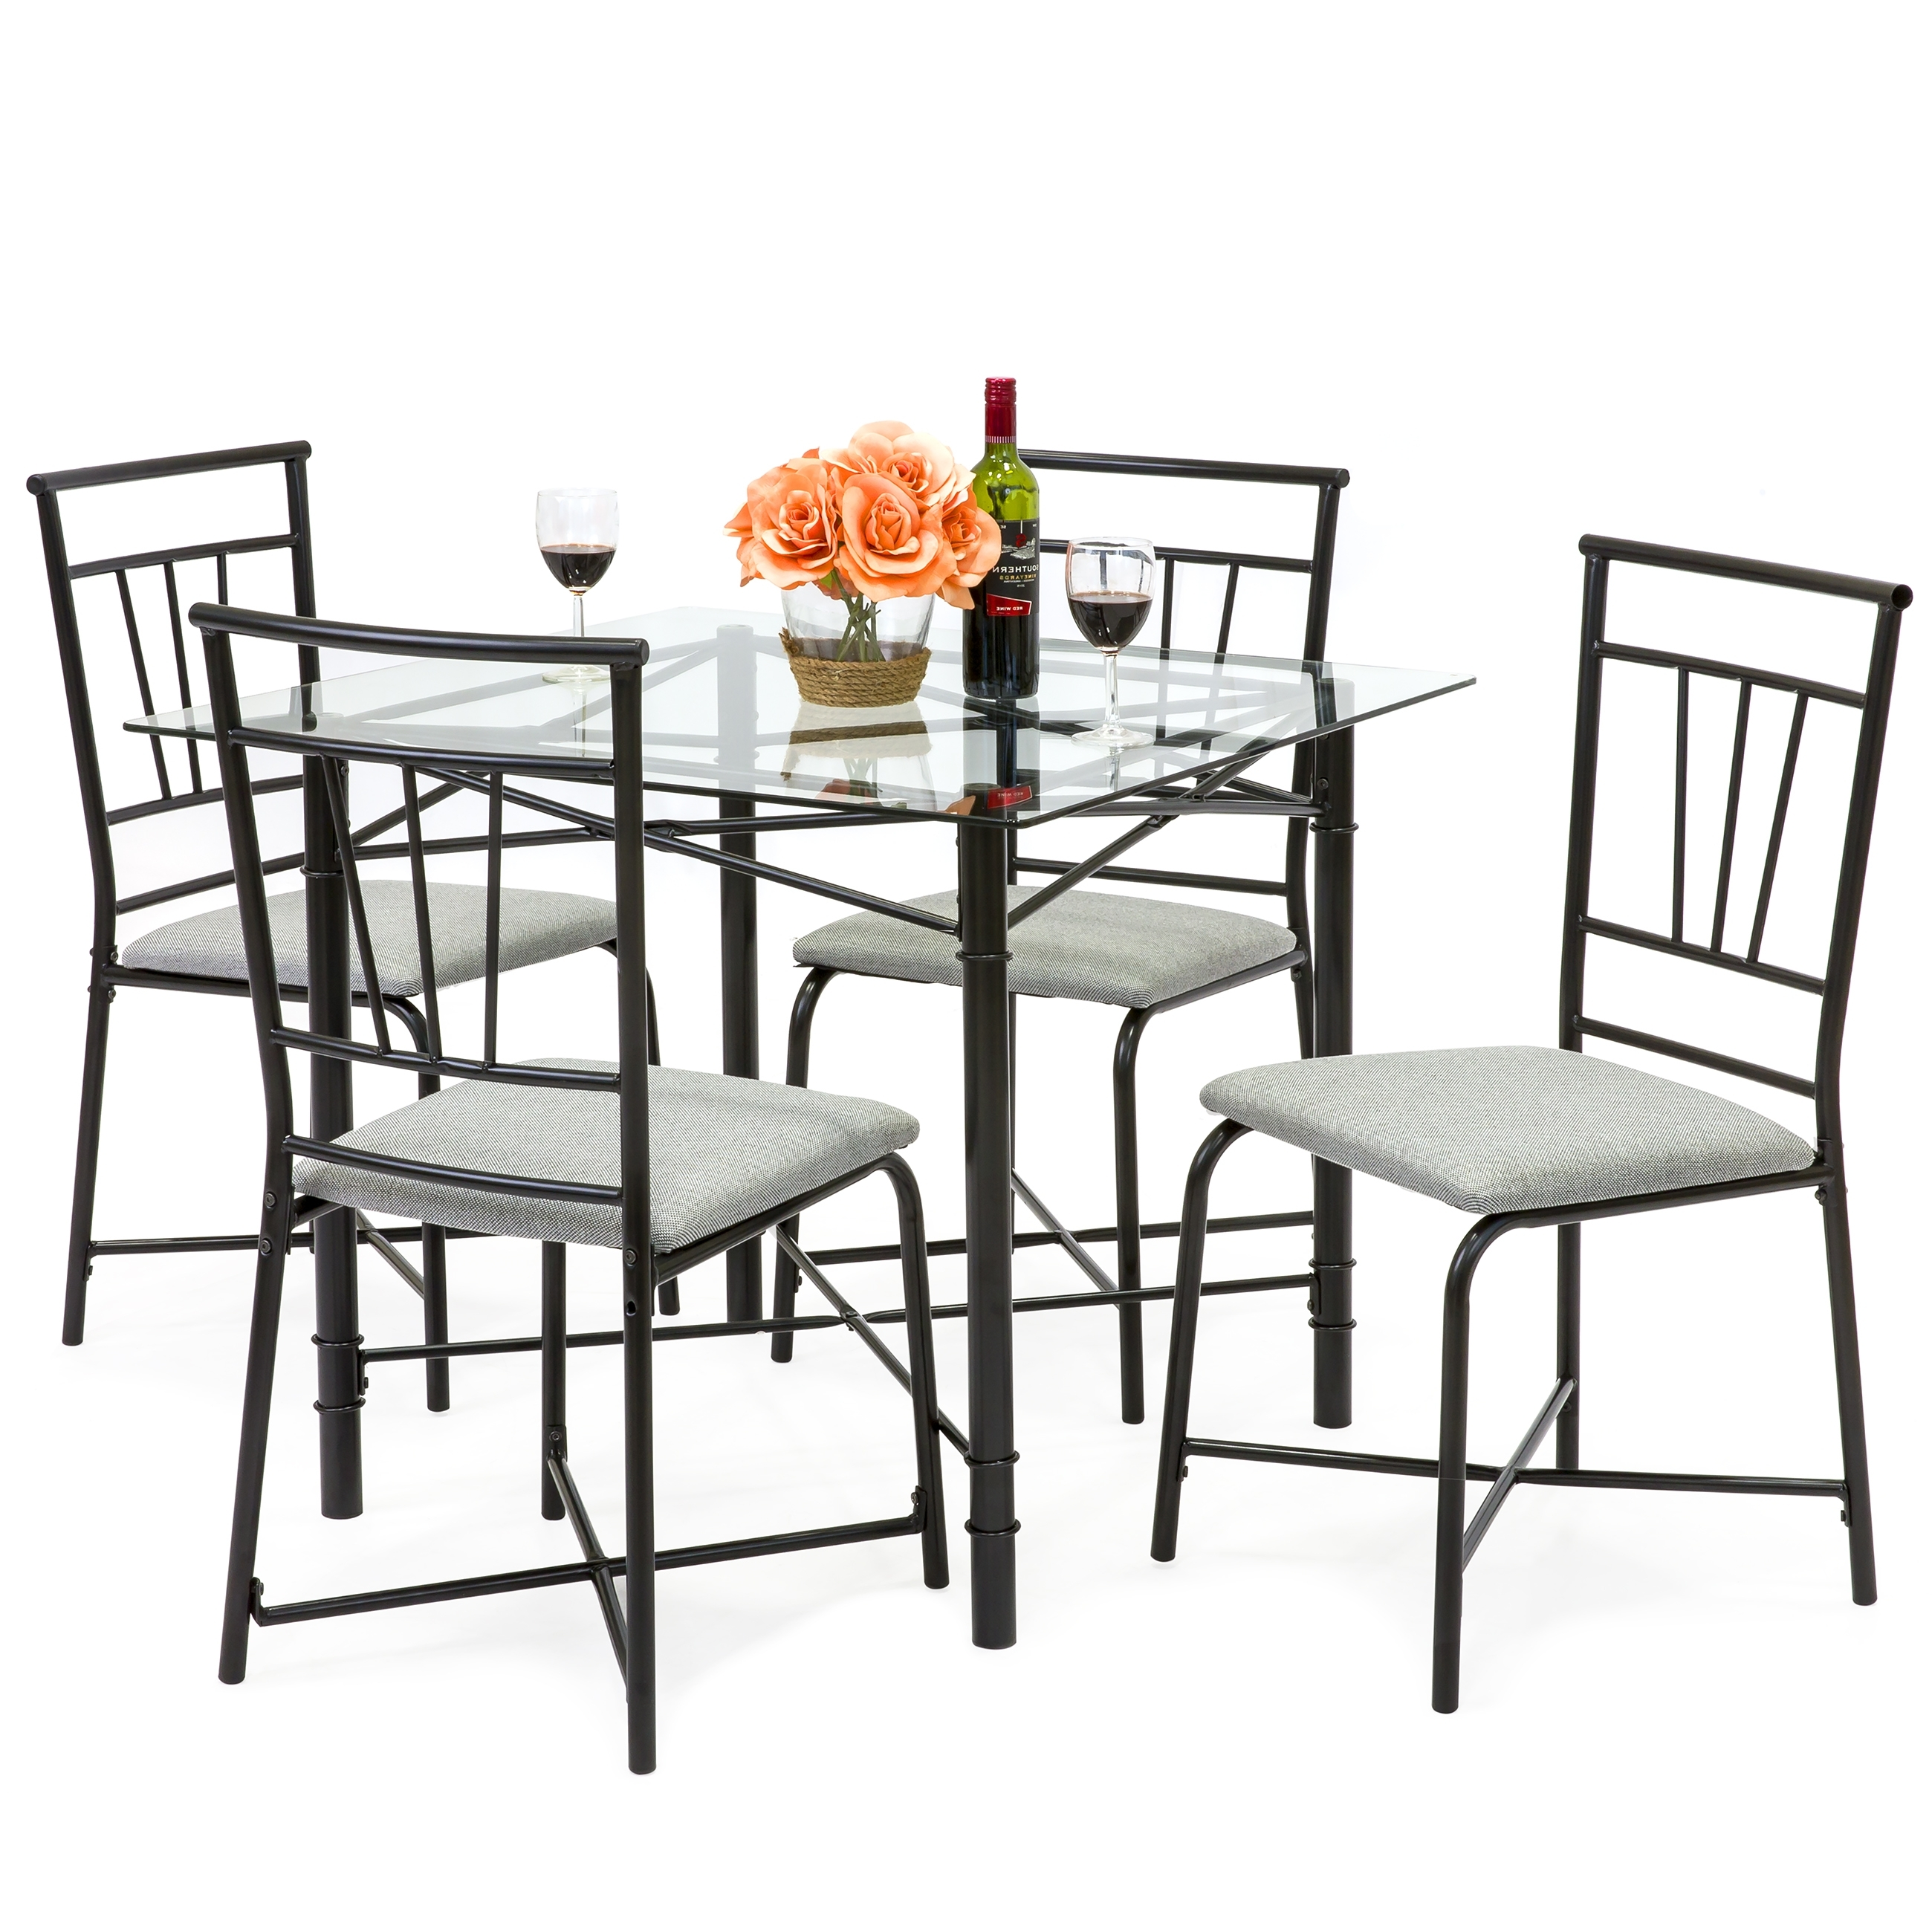 Preferred Black Glass Dining Tables And 4 Chairs Throughout Best Choice Products 5 Piece Square Glass Dining Table Set W/ 4 Upholstered  Chairs (Gallery 23 of 25)